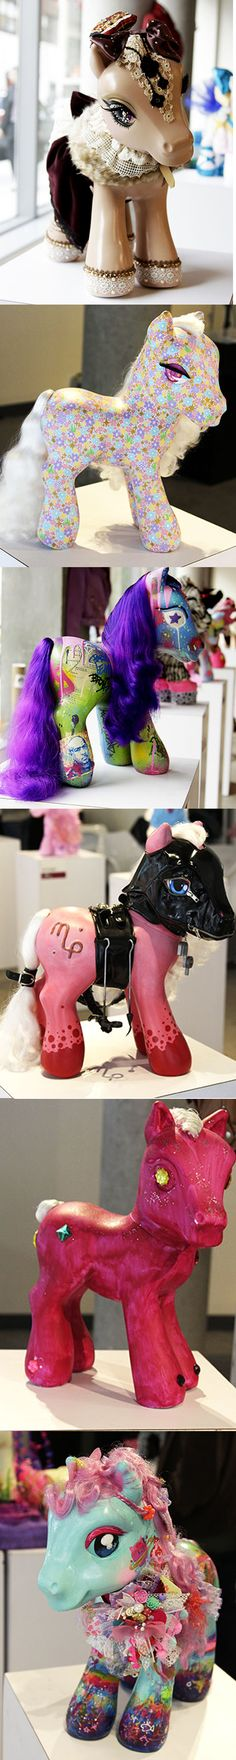 Epic 'My Little Pony' Art Exhibition